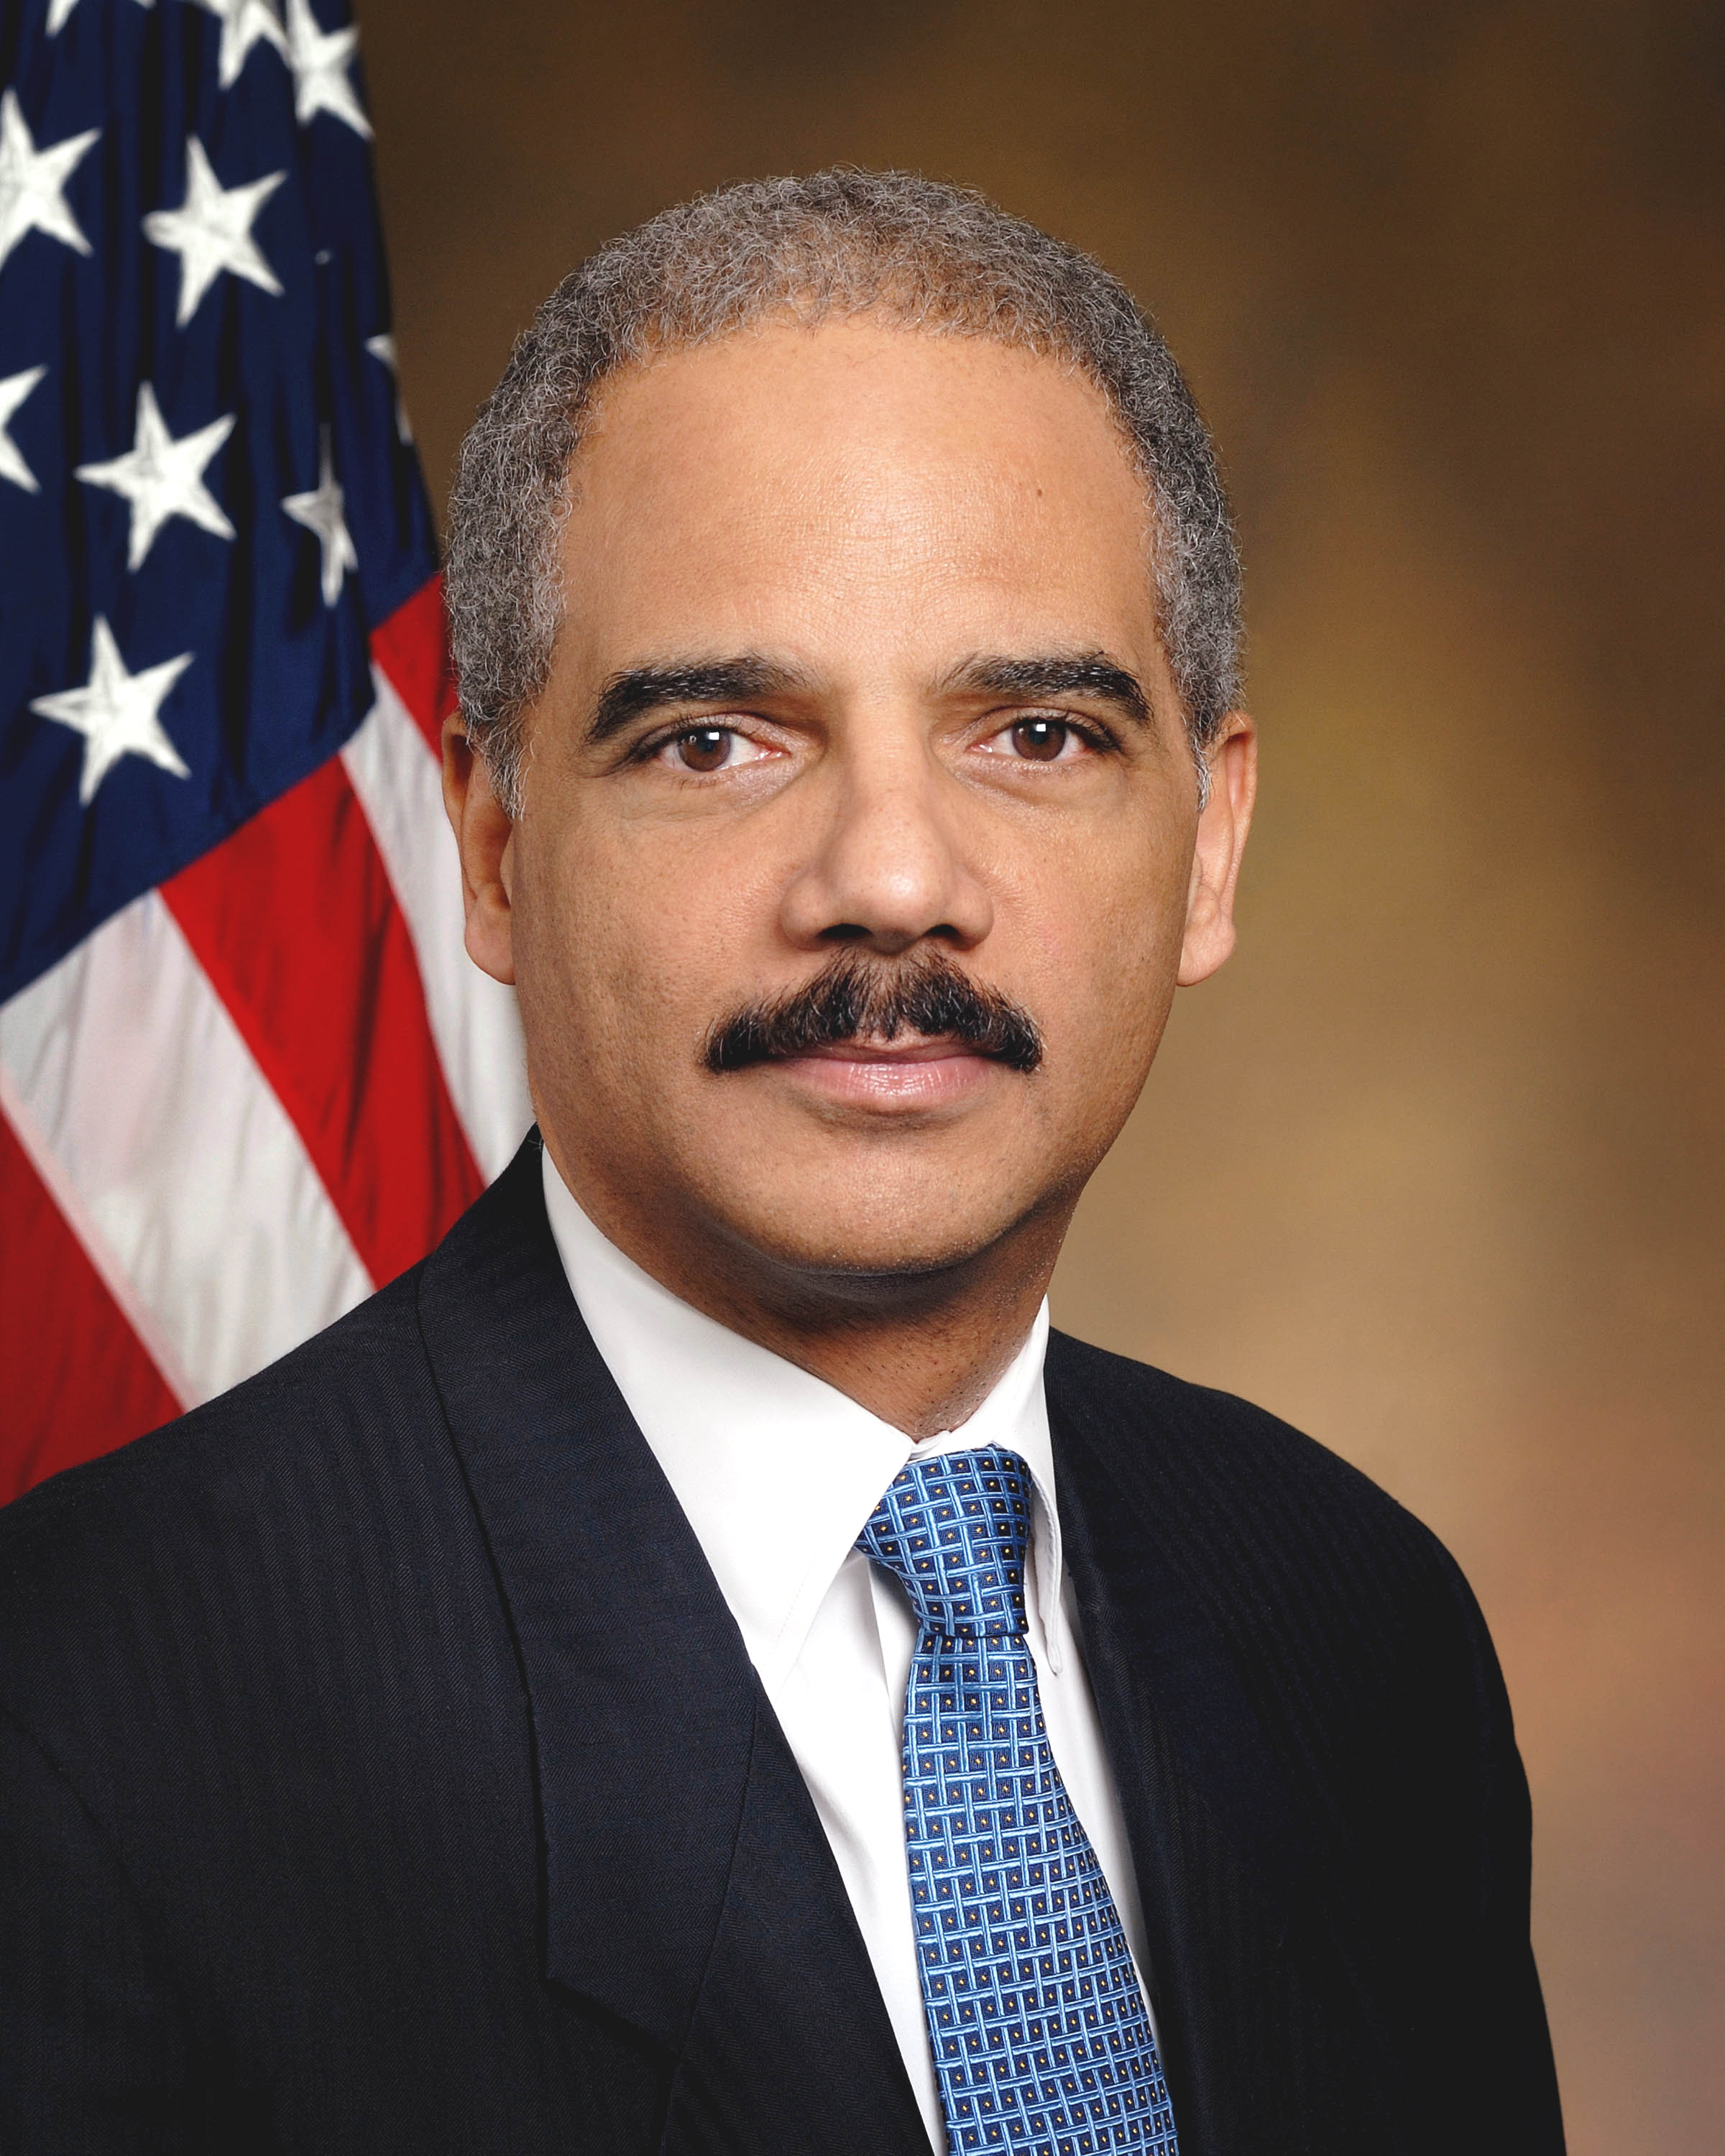 The 67-year old son of father Eric Himpton Holder, Sr and mother Miriam Holder Eric Holder in 2018 photo. Eric Holder earned a  million dollar salary - leaving the net worth at 11.5 million in 2018